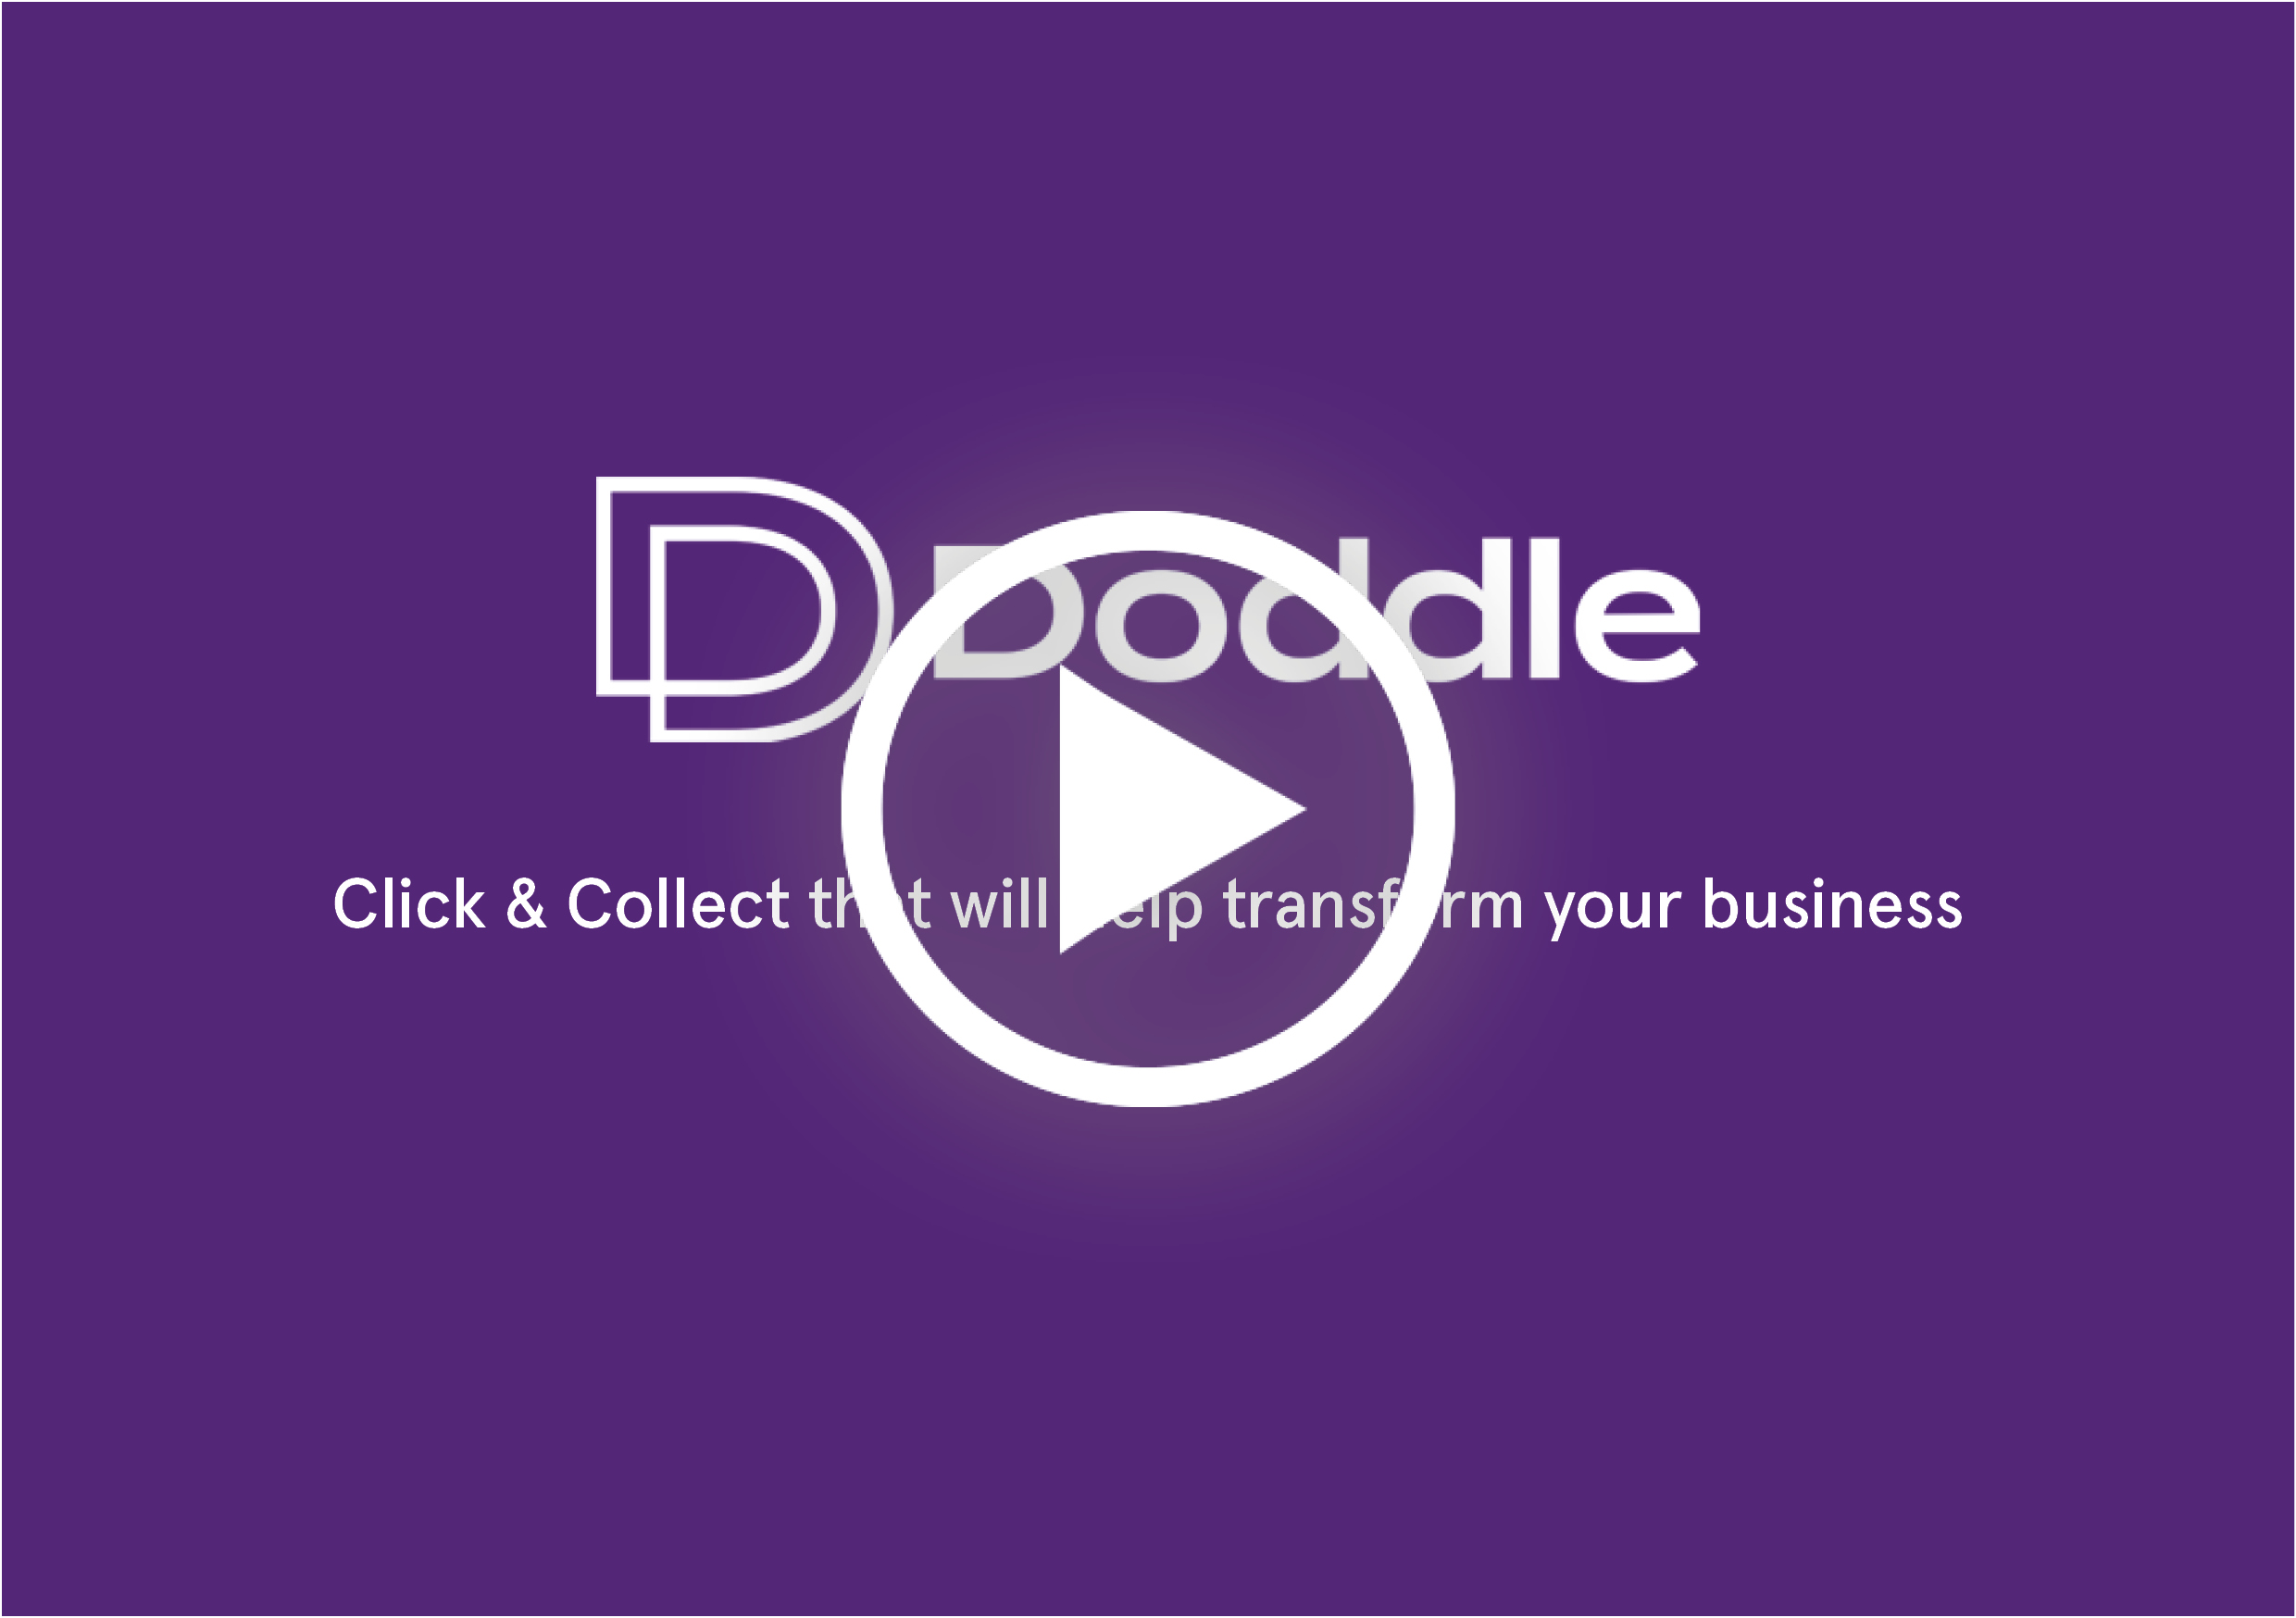 Click & Collect Video (2)